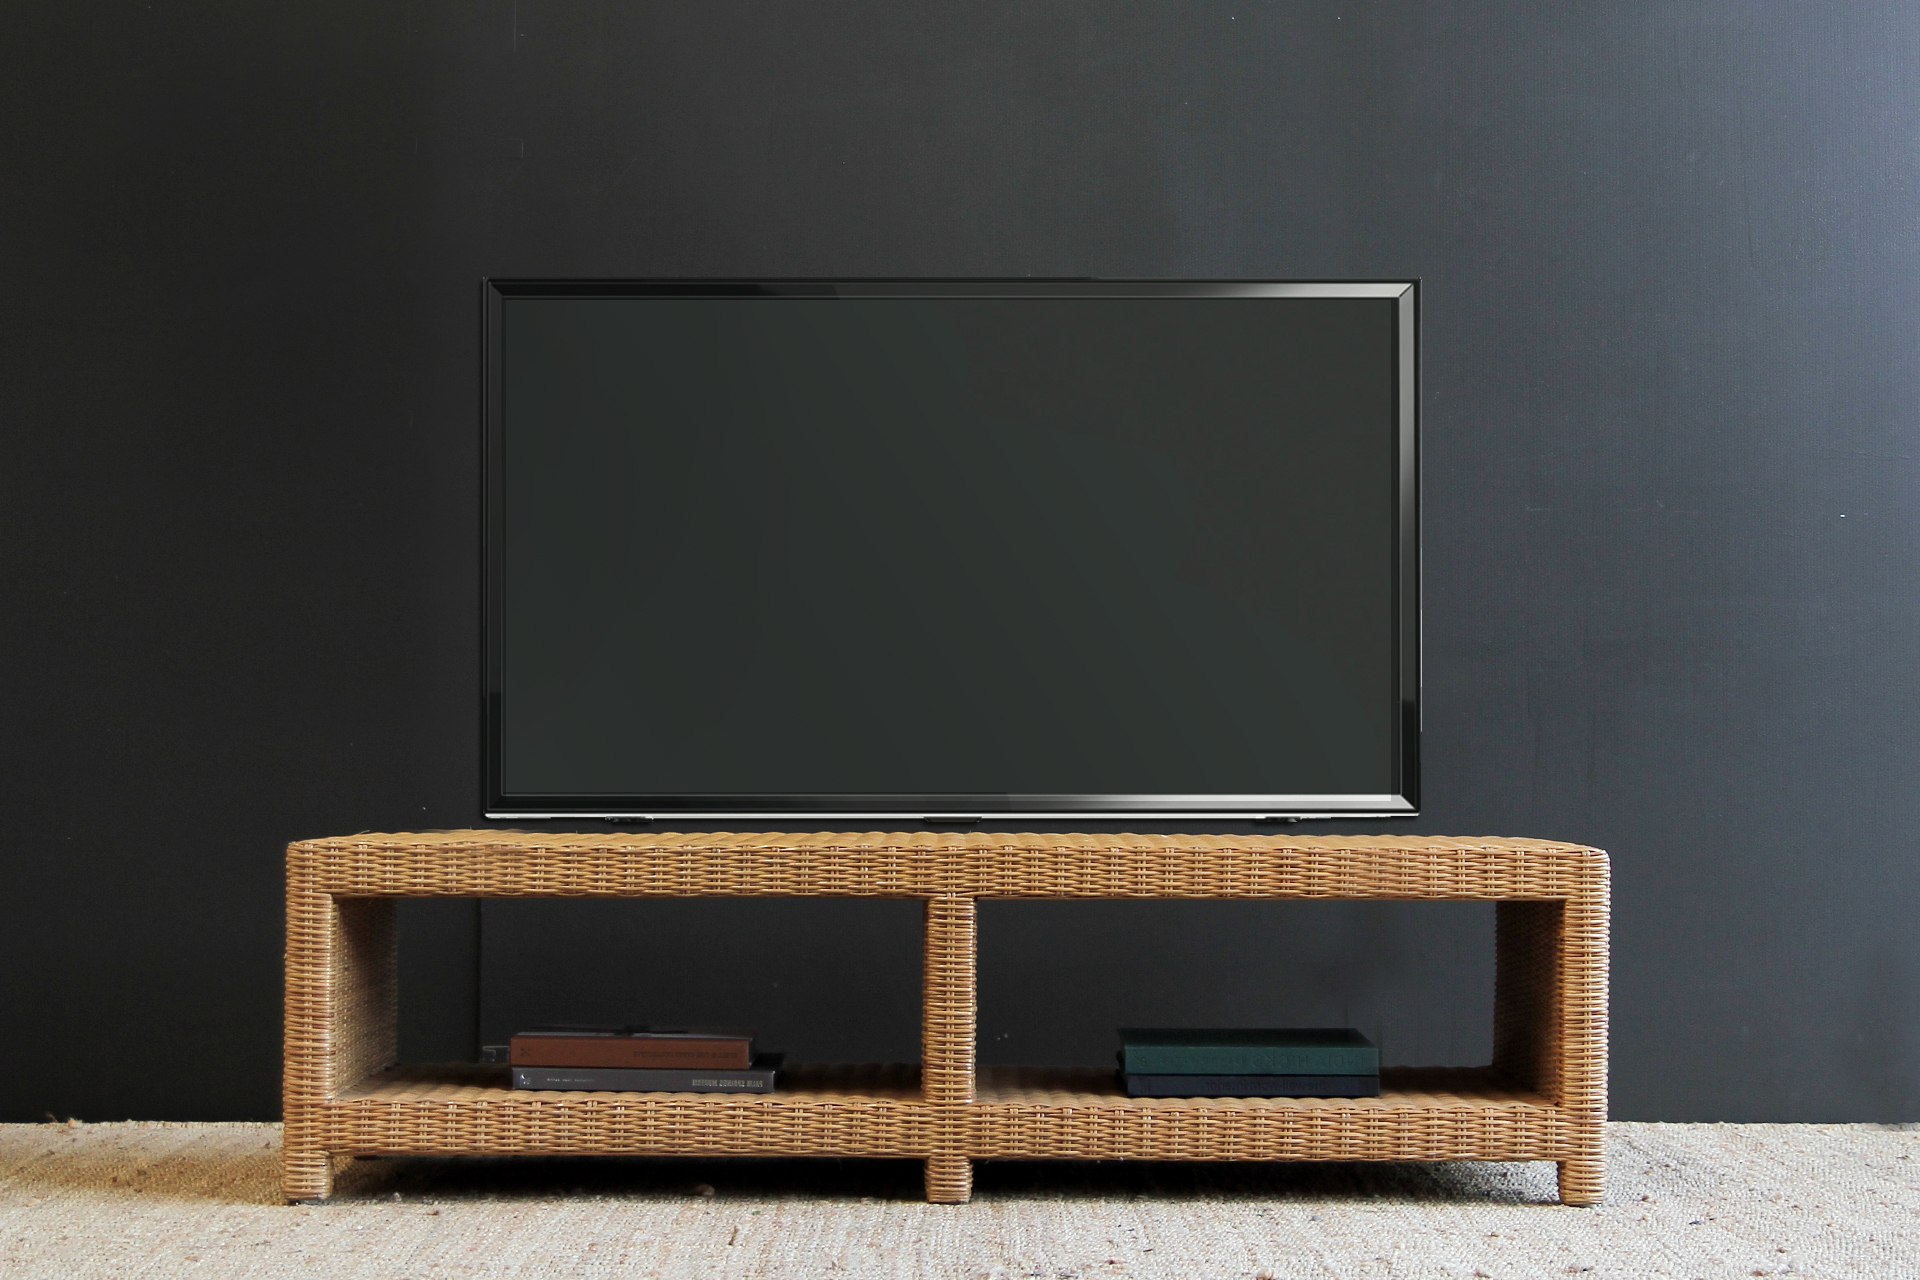 Tampa Low Line Tv Console | Naturally Cane Rattan And Wicker Furniture Regarding Natural Cane Media Console Tables (Gallery 3 of 20)